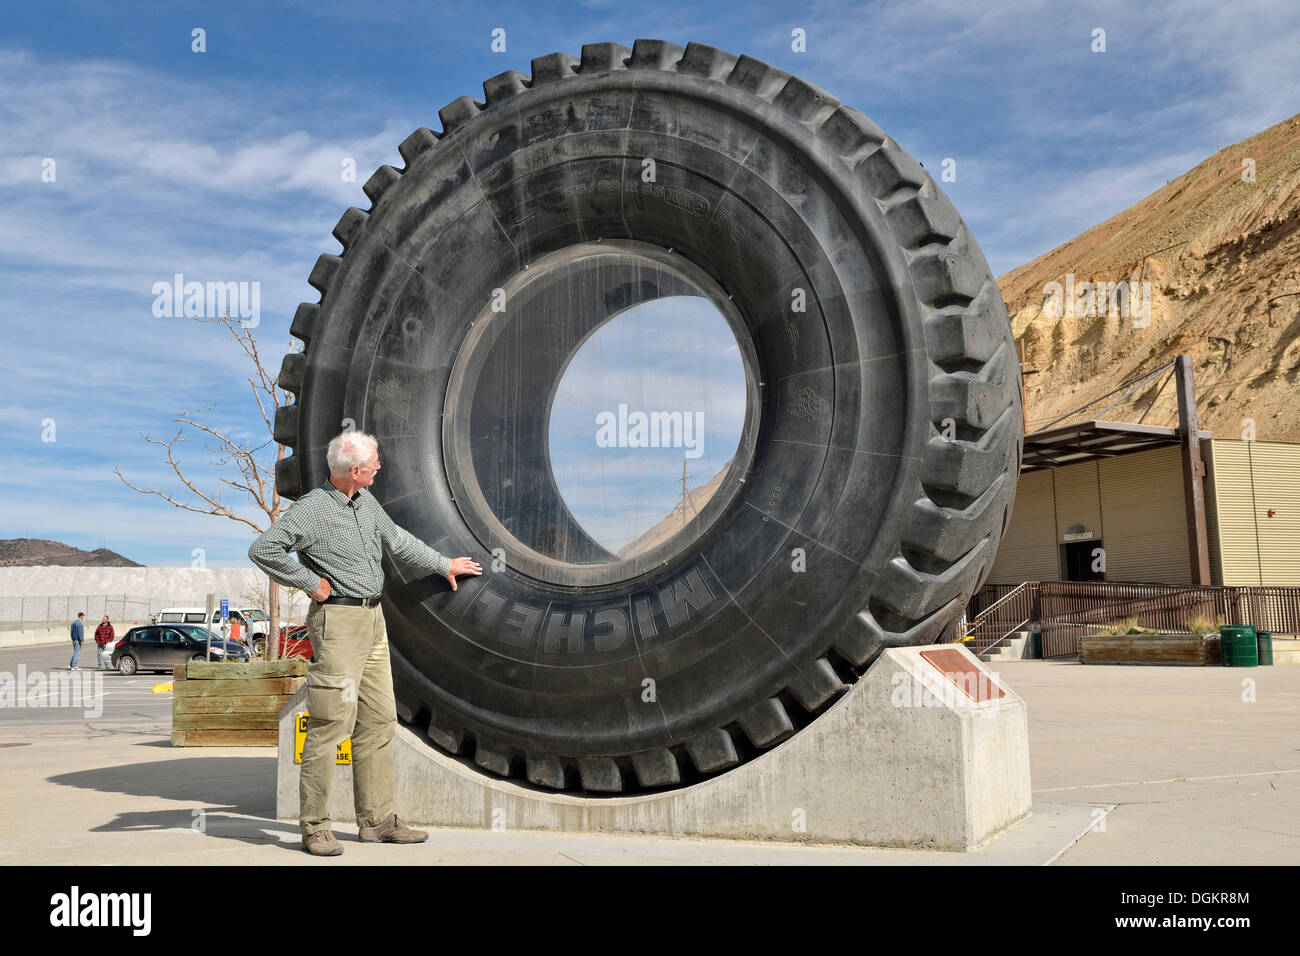 Giant tyre of a haul truck, tyre for heavy trucks and mining vehicles, visitor centre, Kennecott Utah Copper's - Stock Image